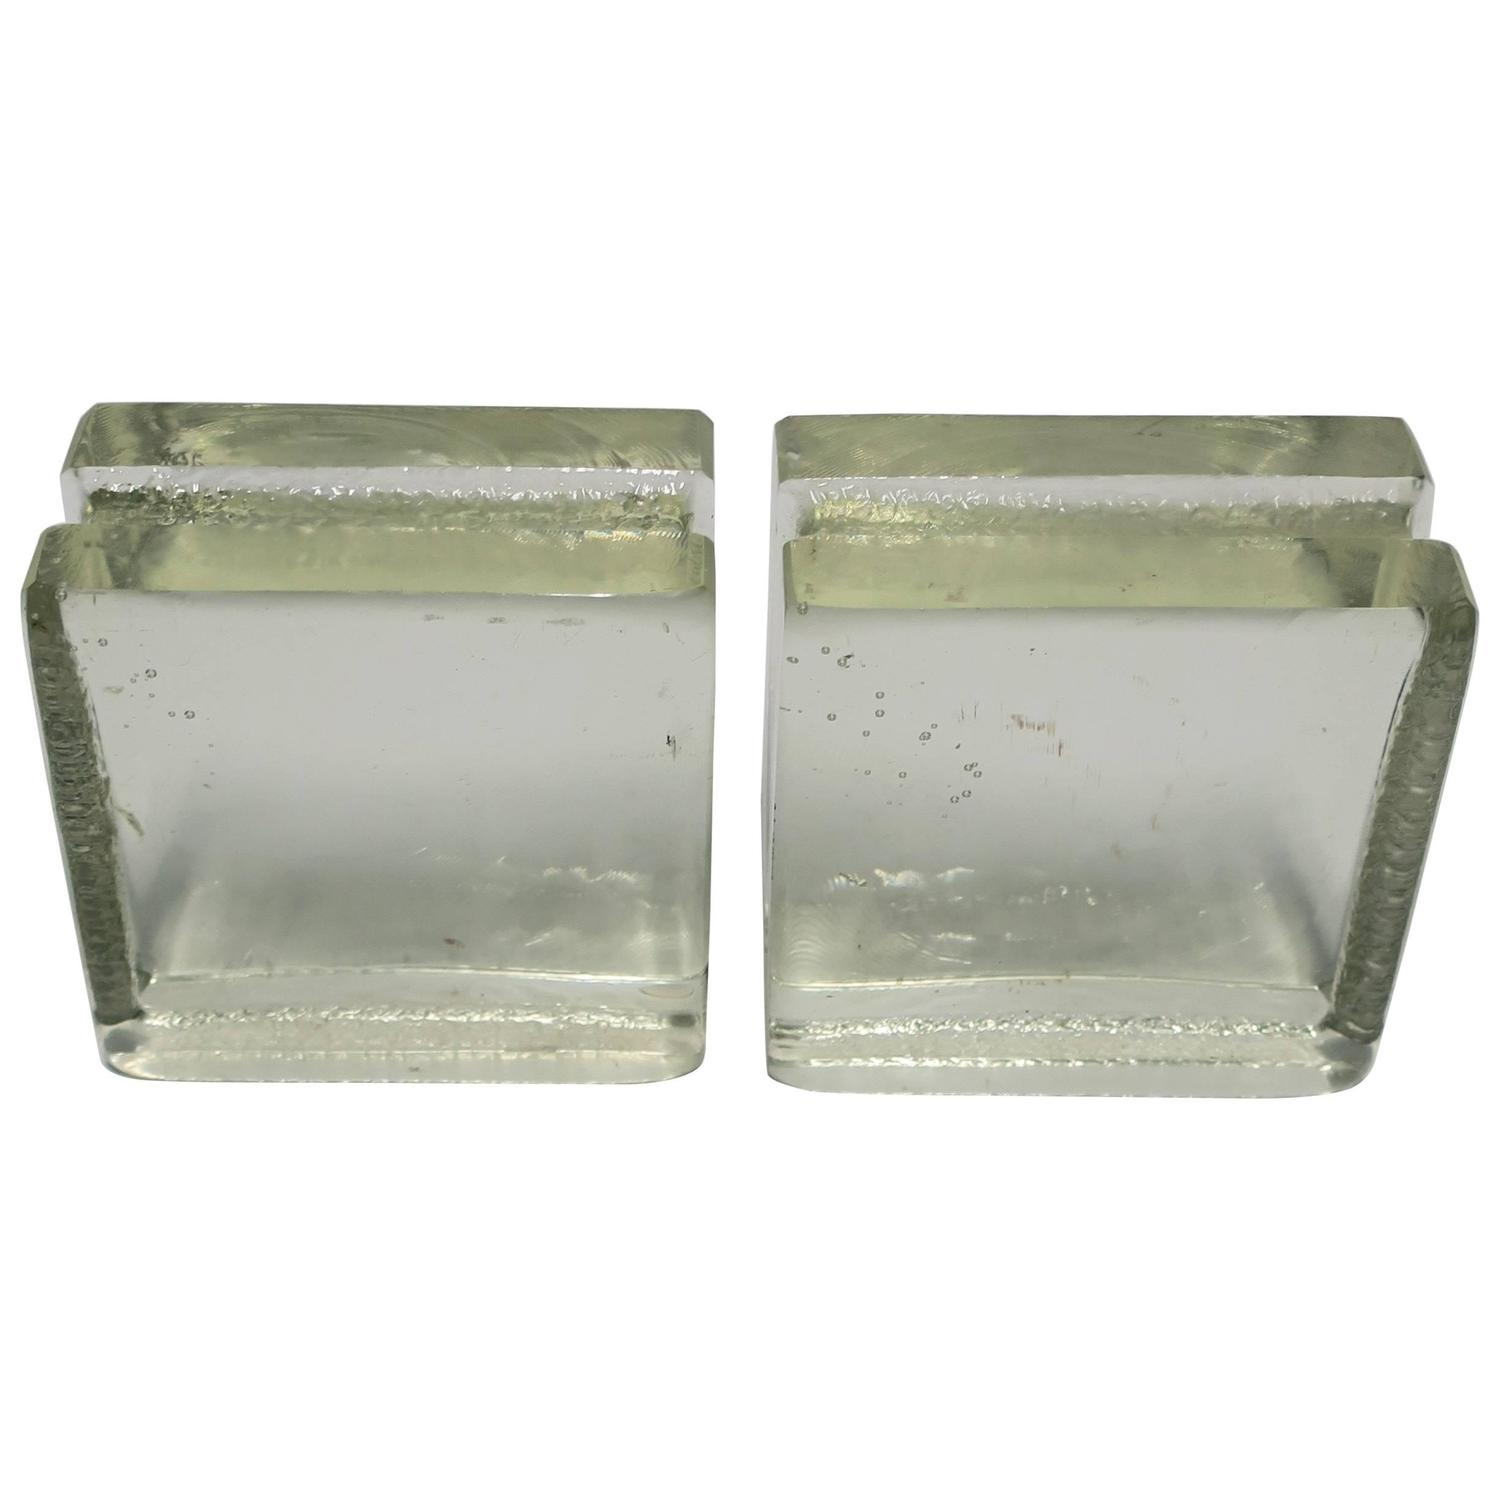 Pair of Modern Solid Glass-Block Bookends For Sale at 1stdibs